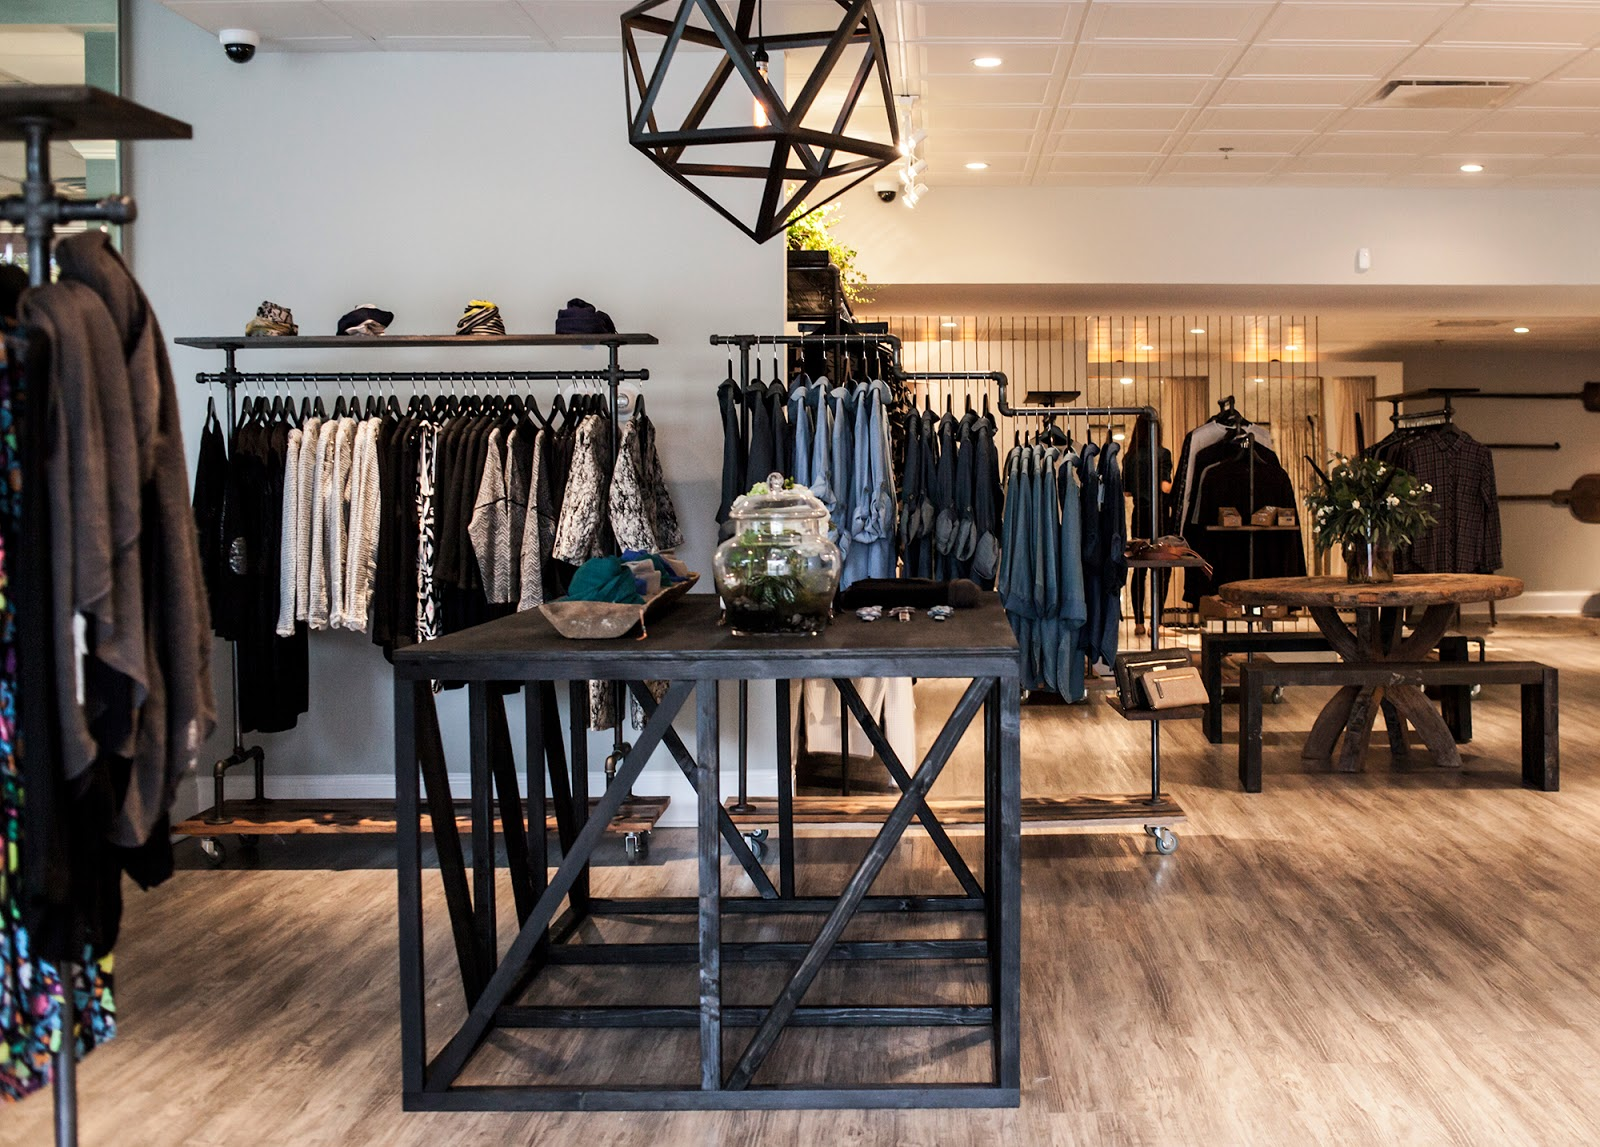 Fashion boutique decorating ideas 70